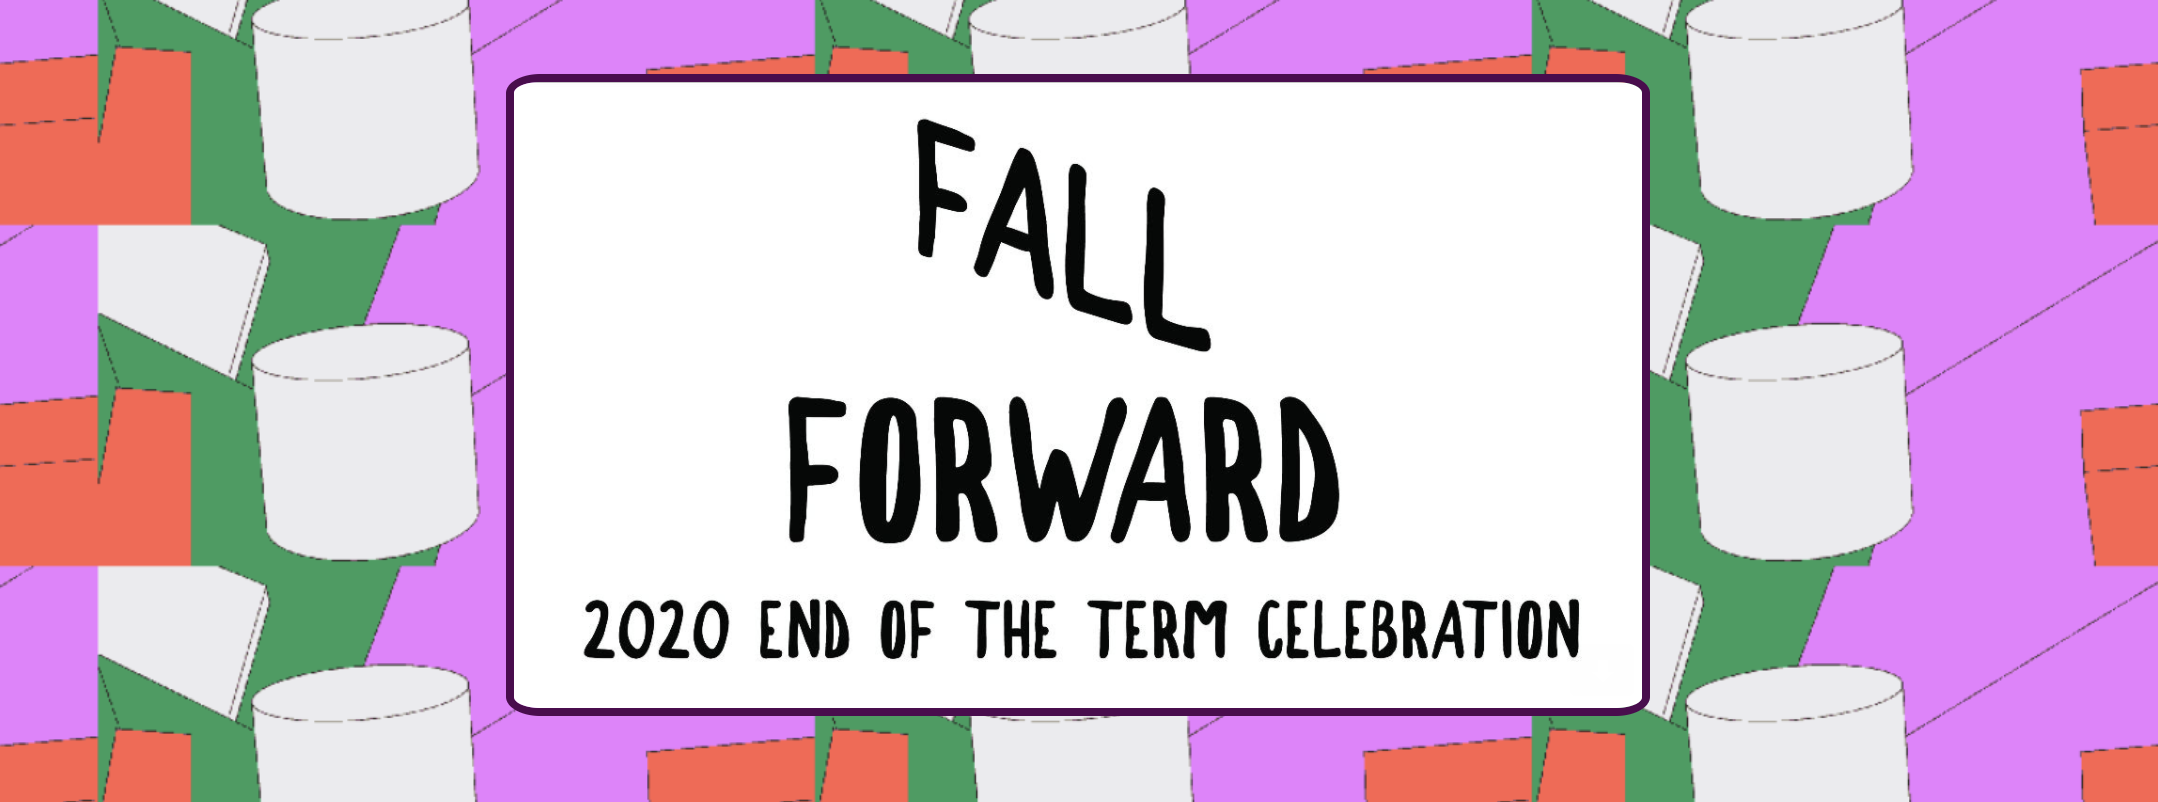 Fall Forward Event